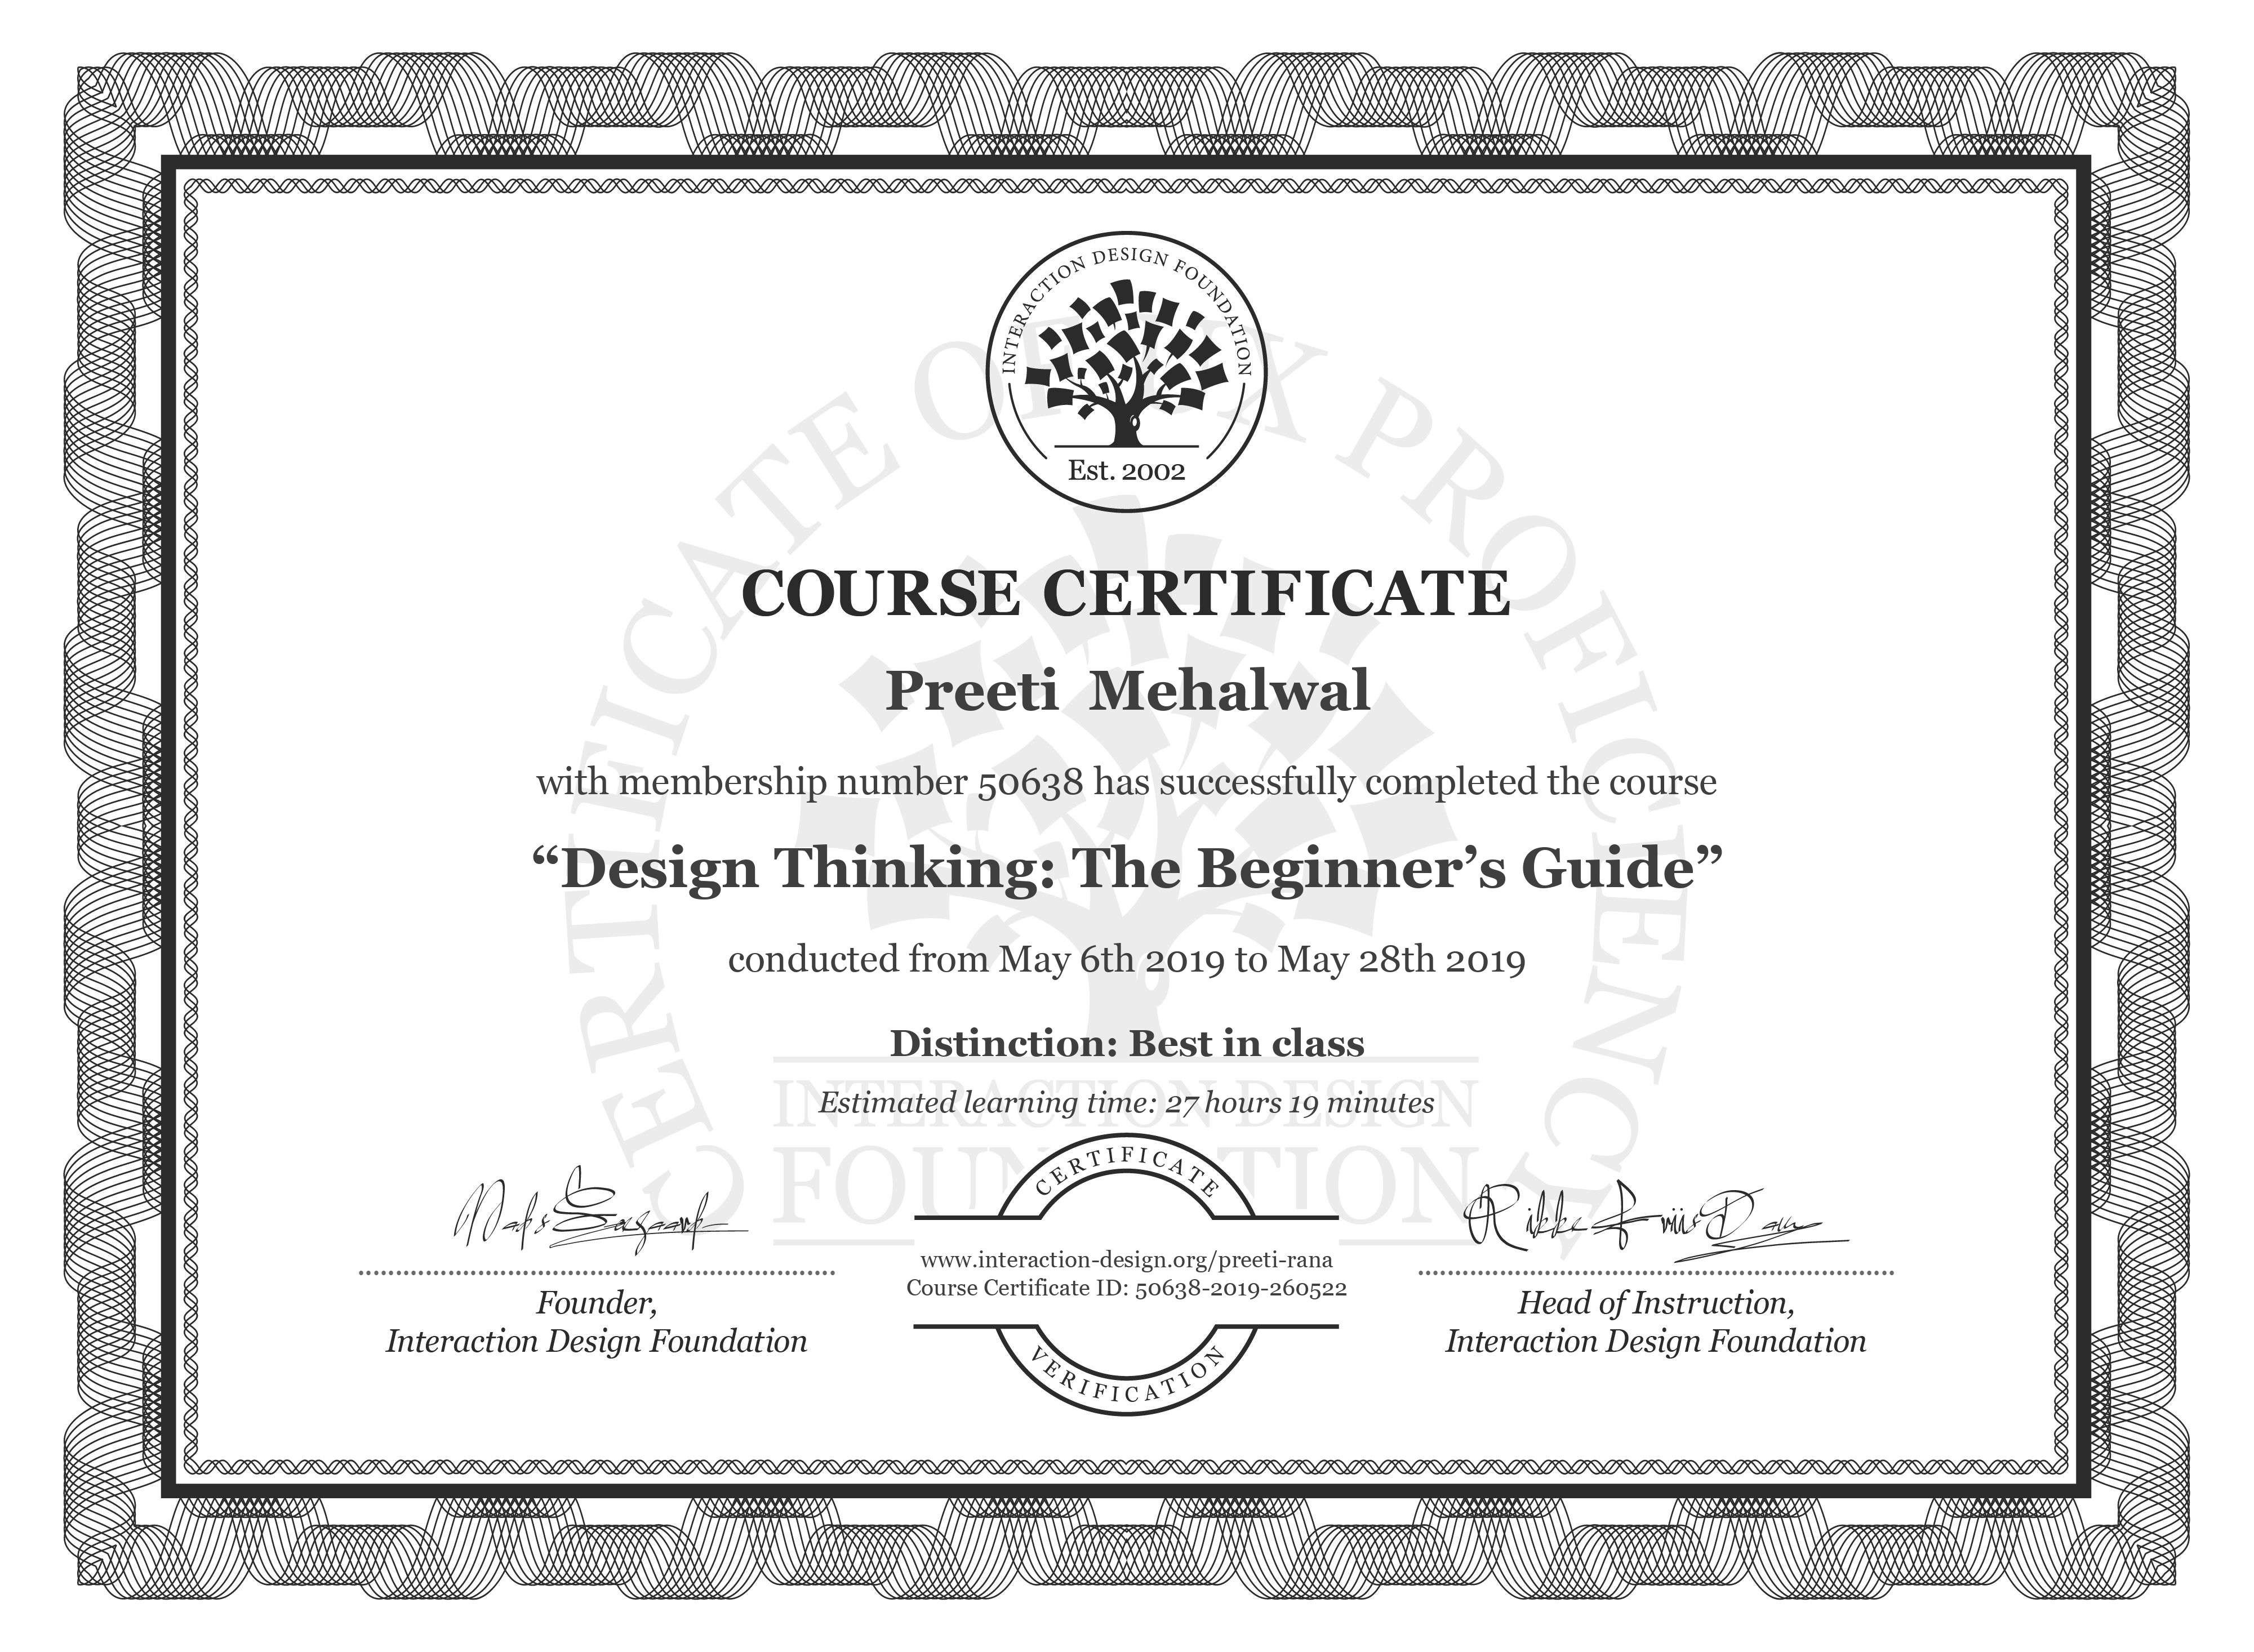 Preeti  Mehalwal's Course Certificate: Design Thinking: The Beginner's Guide